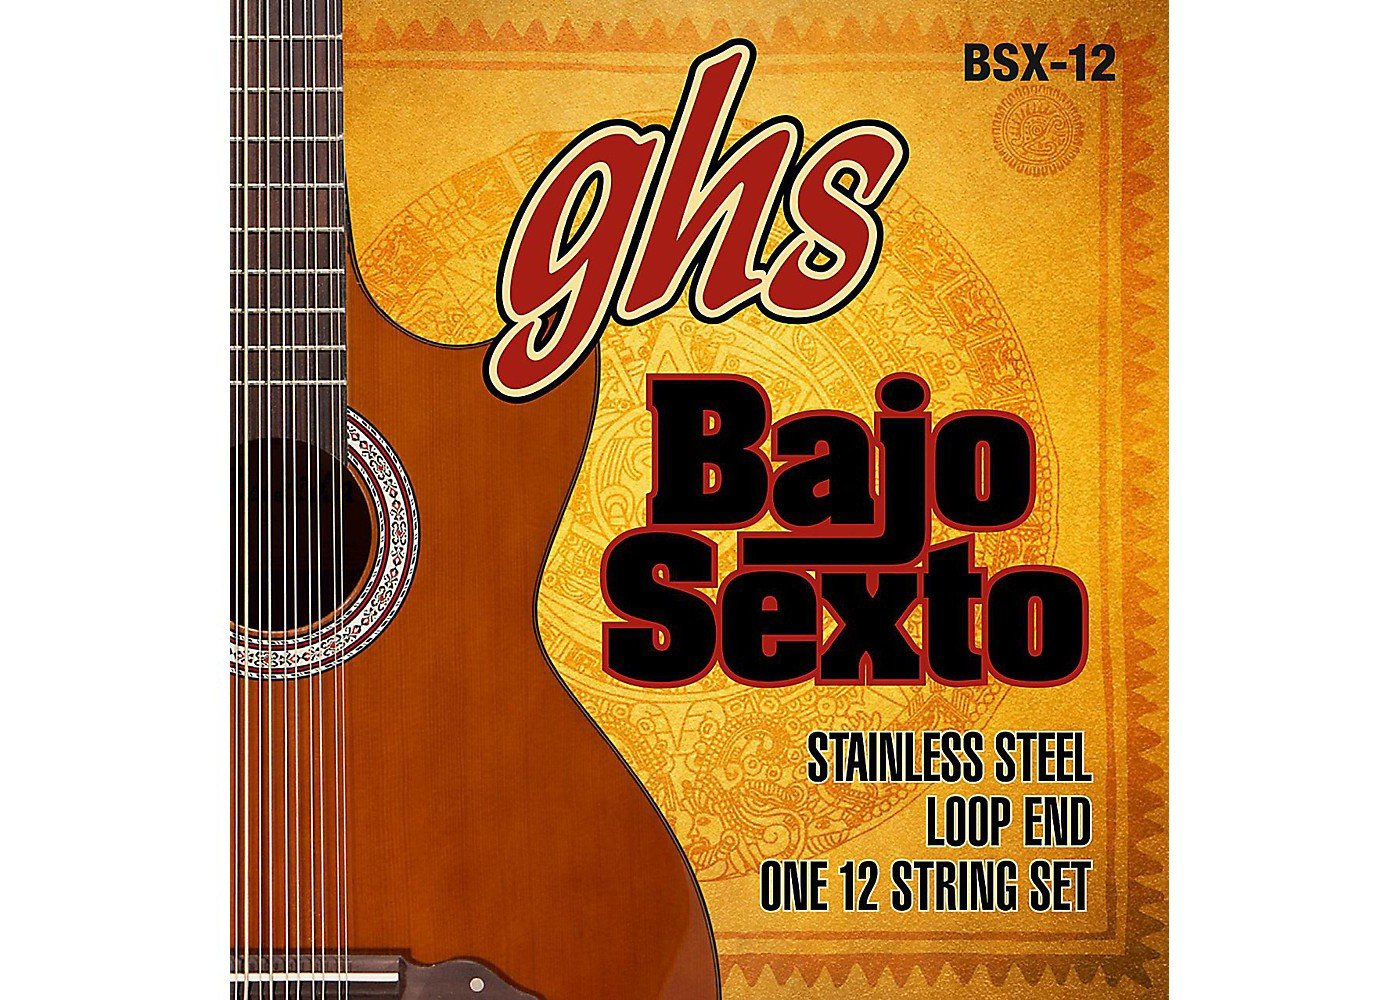 GHS BAJO SEXTO STRINGS BSX-12 STAINLESS STEEL 12-STRING